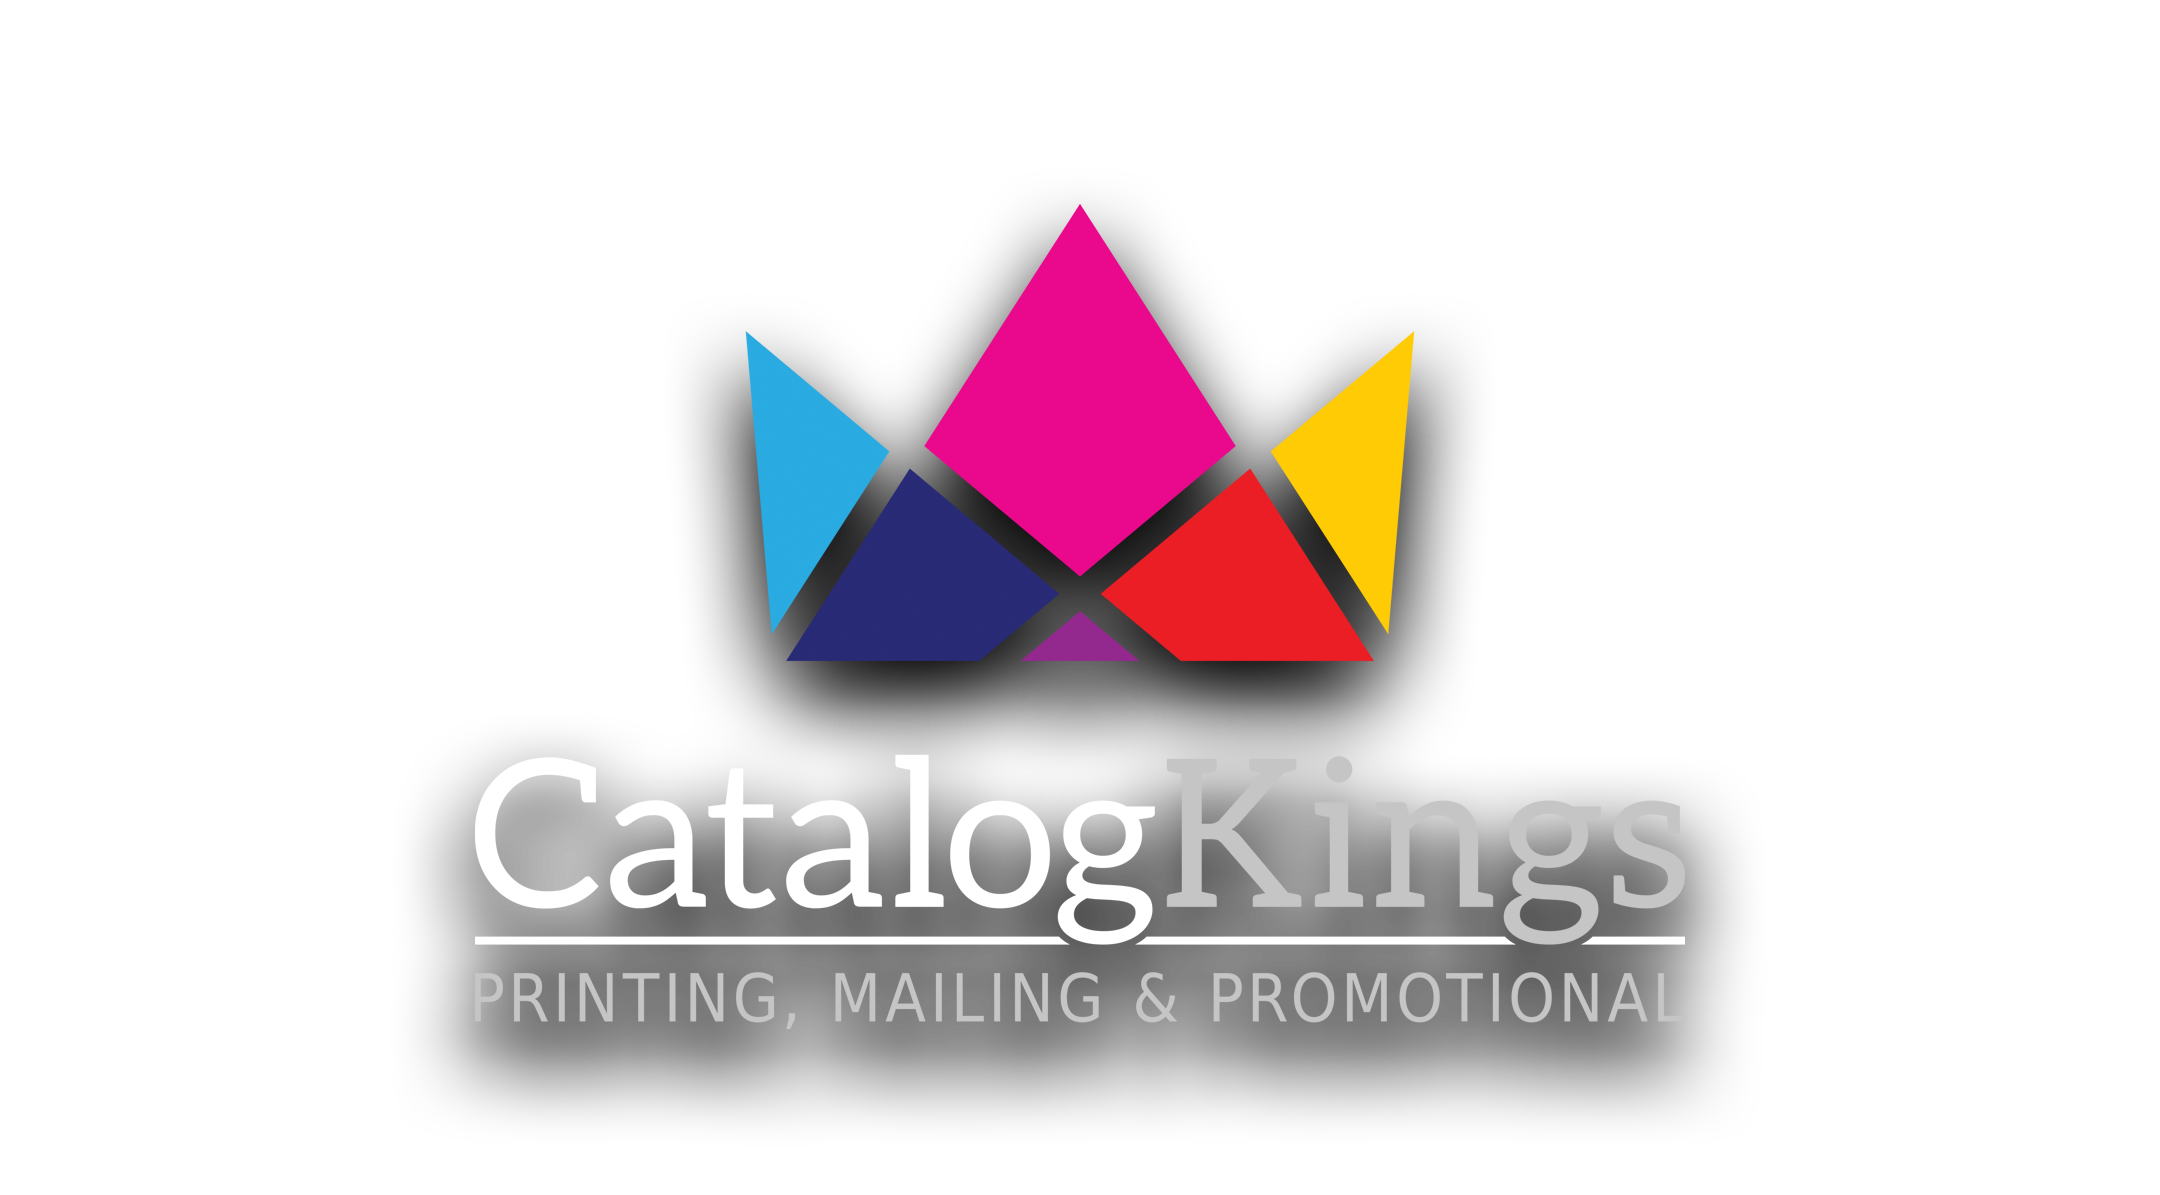 Catalog Kings